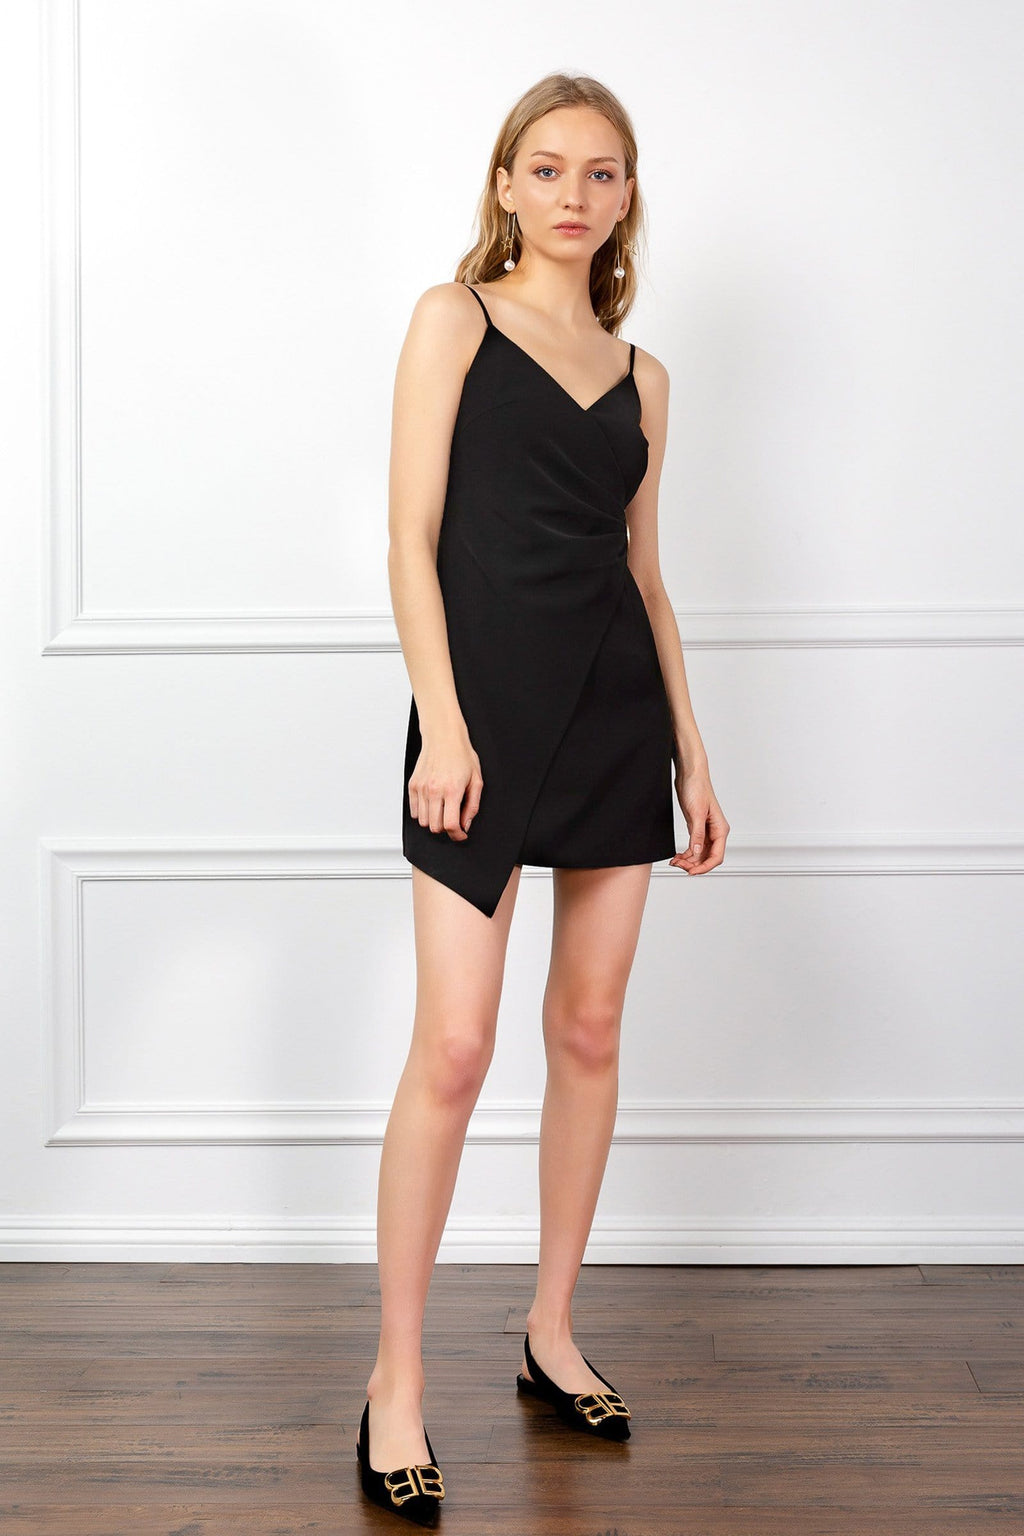 https://cdn.shopify.com/s/files/1/0015/5638/1732/files/Lil_Black_Dress-VD.mp4?66159